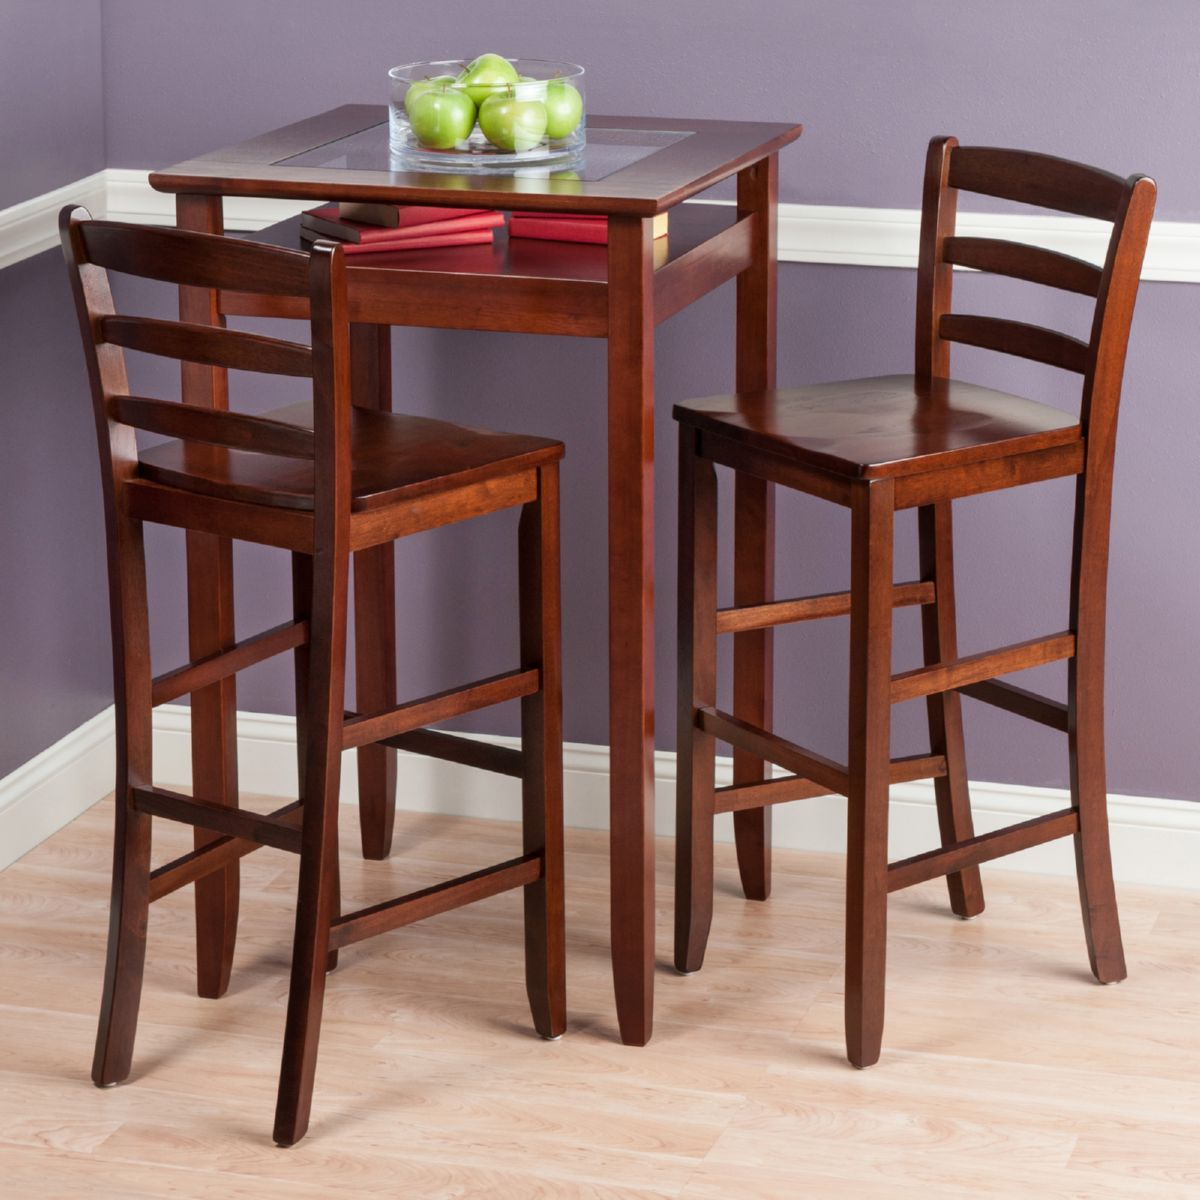 Cafe table and chairs design - Winsome Halo 3 Piece Pub Table Set W 2 Ladder Back Stools In Walnut